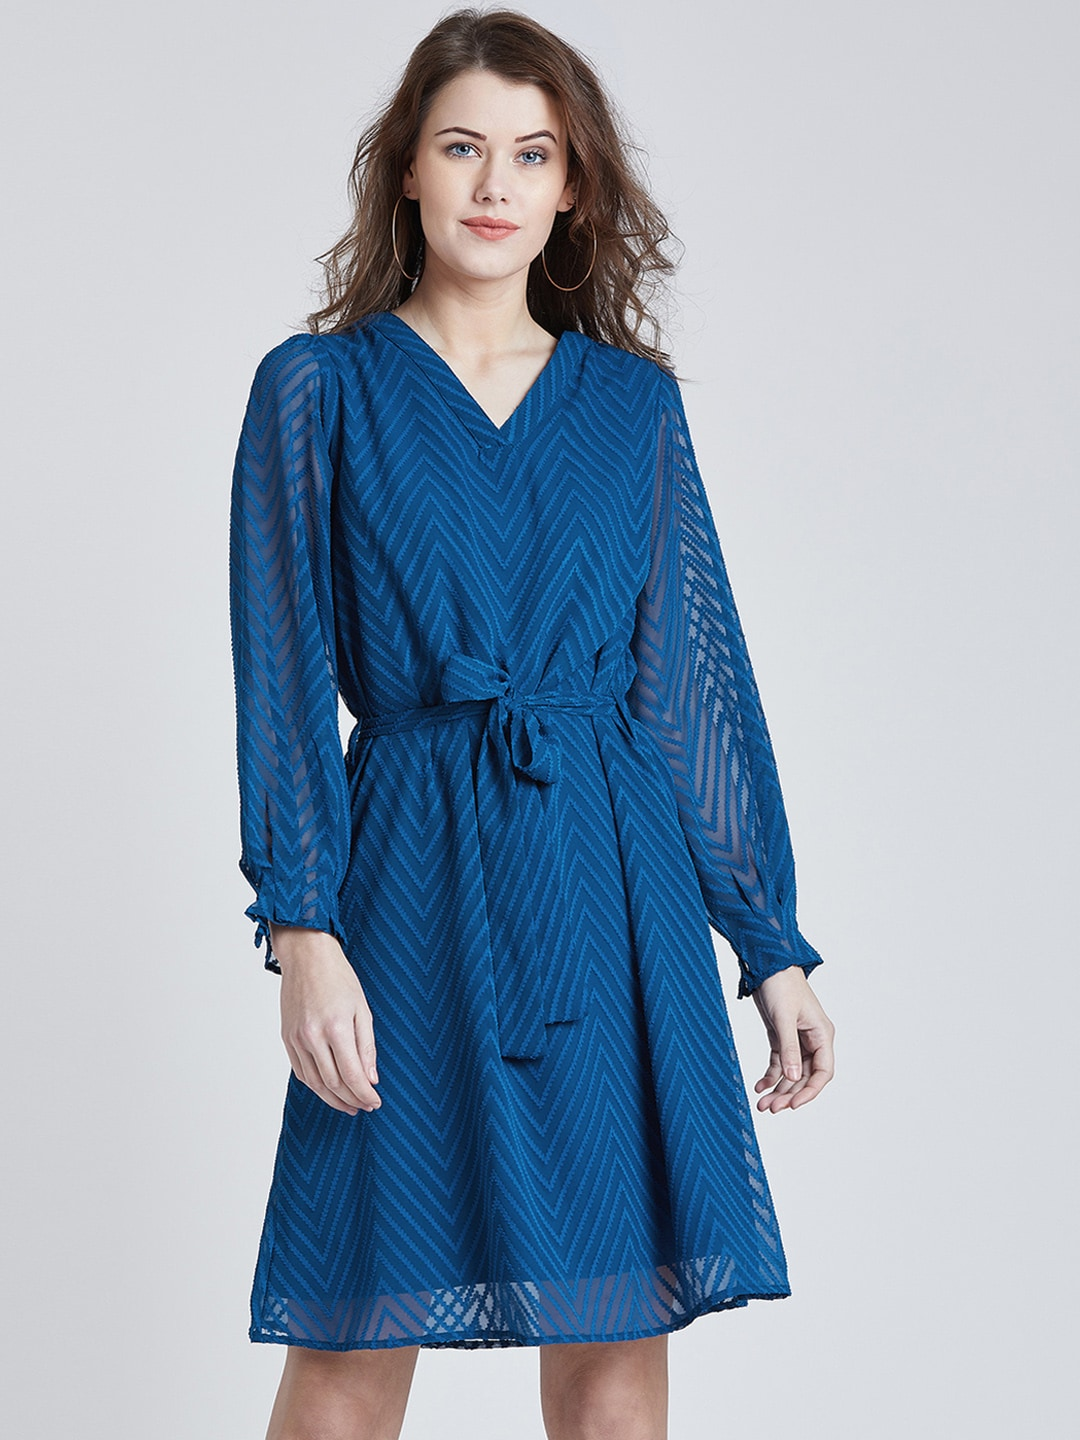 57470d4d85 Casual Dress - Buy Casual Dress Online in India